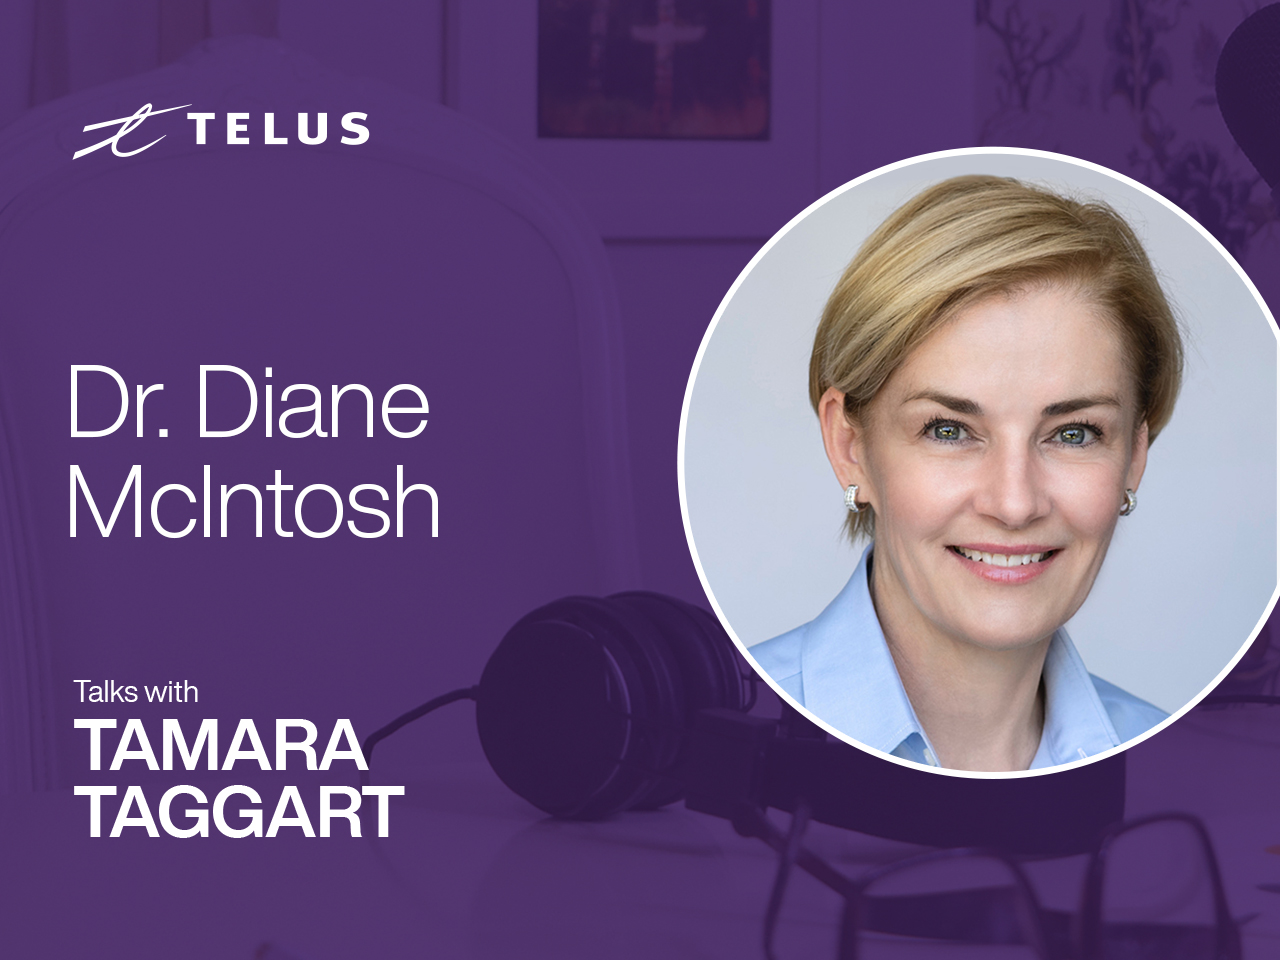 Psychiatrist and TELUS Chief Neuroscience Officer Dr. Diane McIntosh